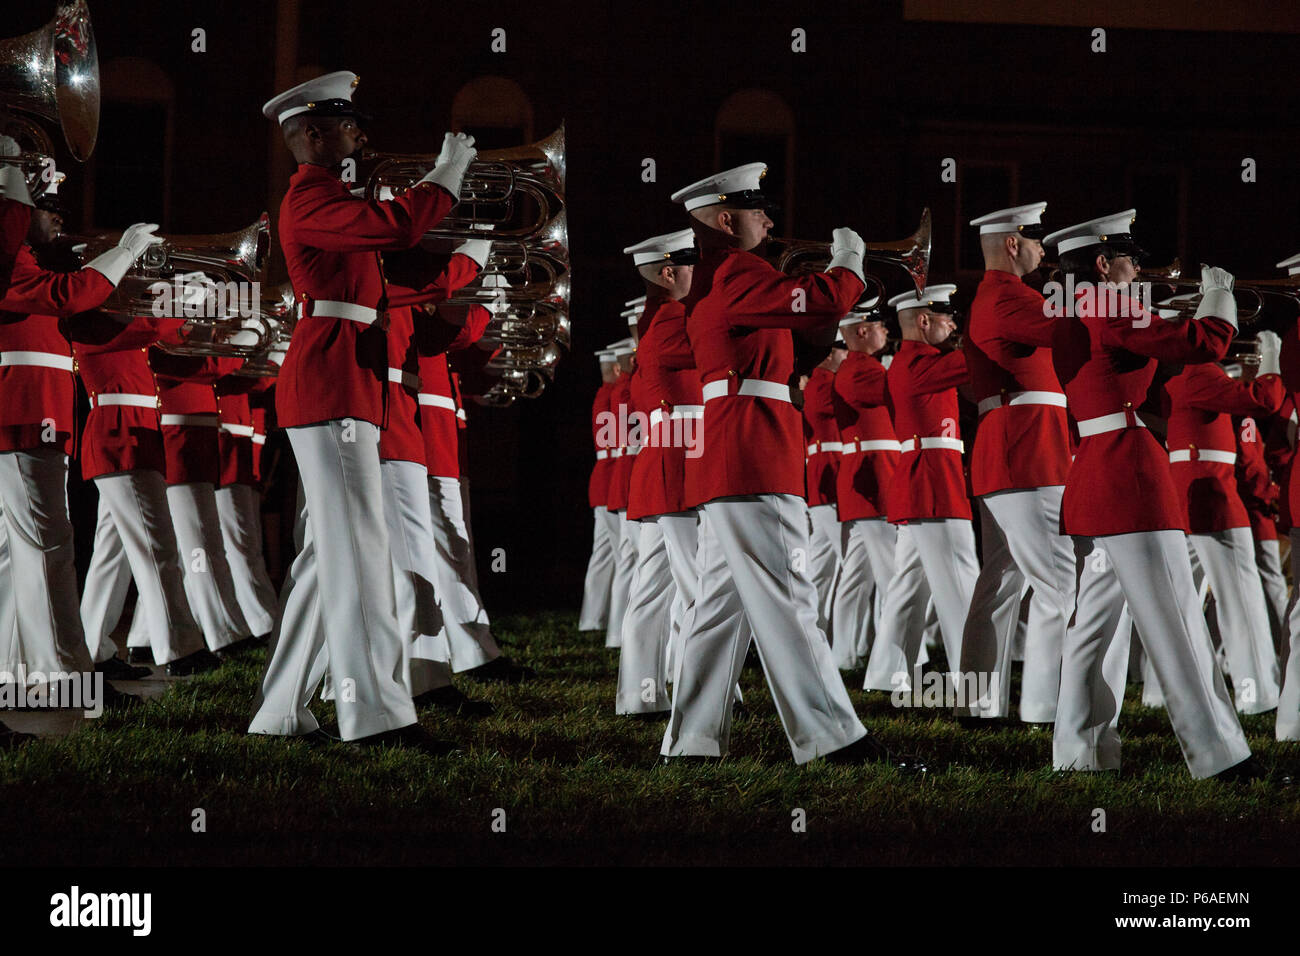 Members of the U.S. Marine Corps Drum and Bugle Corps perform during an evening parade at Marine Barracks Washington, Washington, D.C., April. 29, 2016. The guest of honor was Gen. Robert B. Neller, the 37th commandant of the Marine Corps, and the hosting official was Col. Benjamin T. Watson, commanding officer, Marines Barracks Washington. The evening parade summer tradition began in 1934 and features the Silent Drill Platoon, the U.S. Marine Band, the U.S. Marine Drum and Bugle Corps and two marching companies. More than 3,500 guests attend the parade every week. (U.S. Marine Corps photo by  Stock Photo